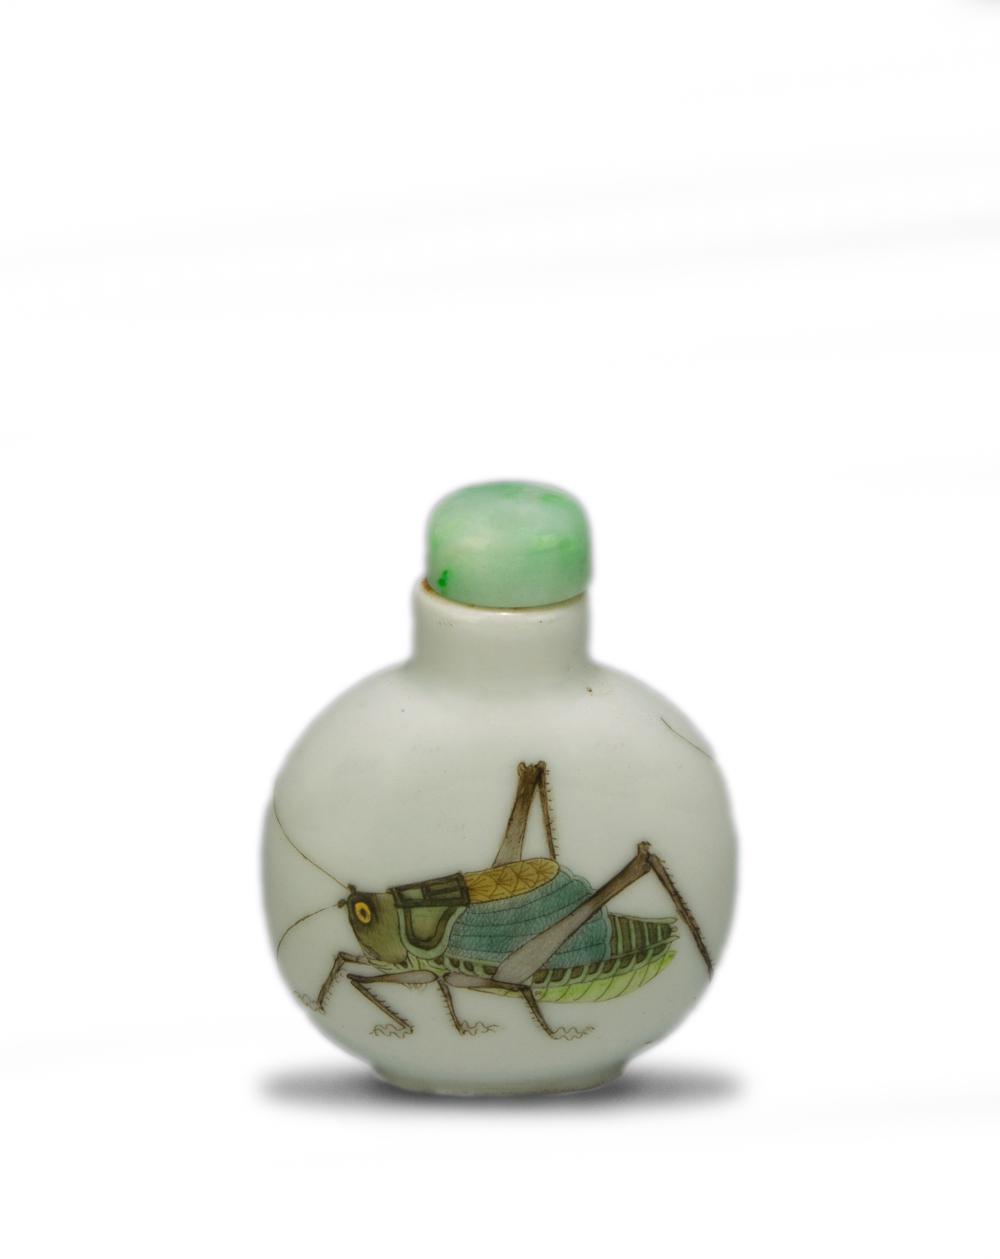 CHINESE IMPERIAL DAOGUANG SNUFF BOTTLE WITH CRICKETS